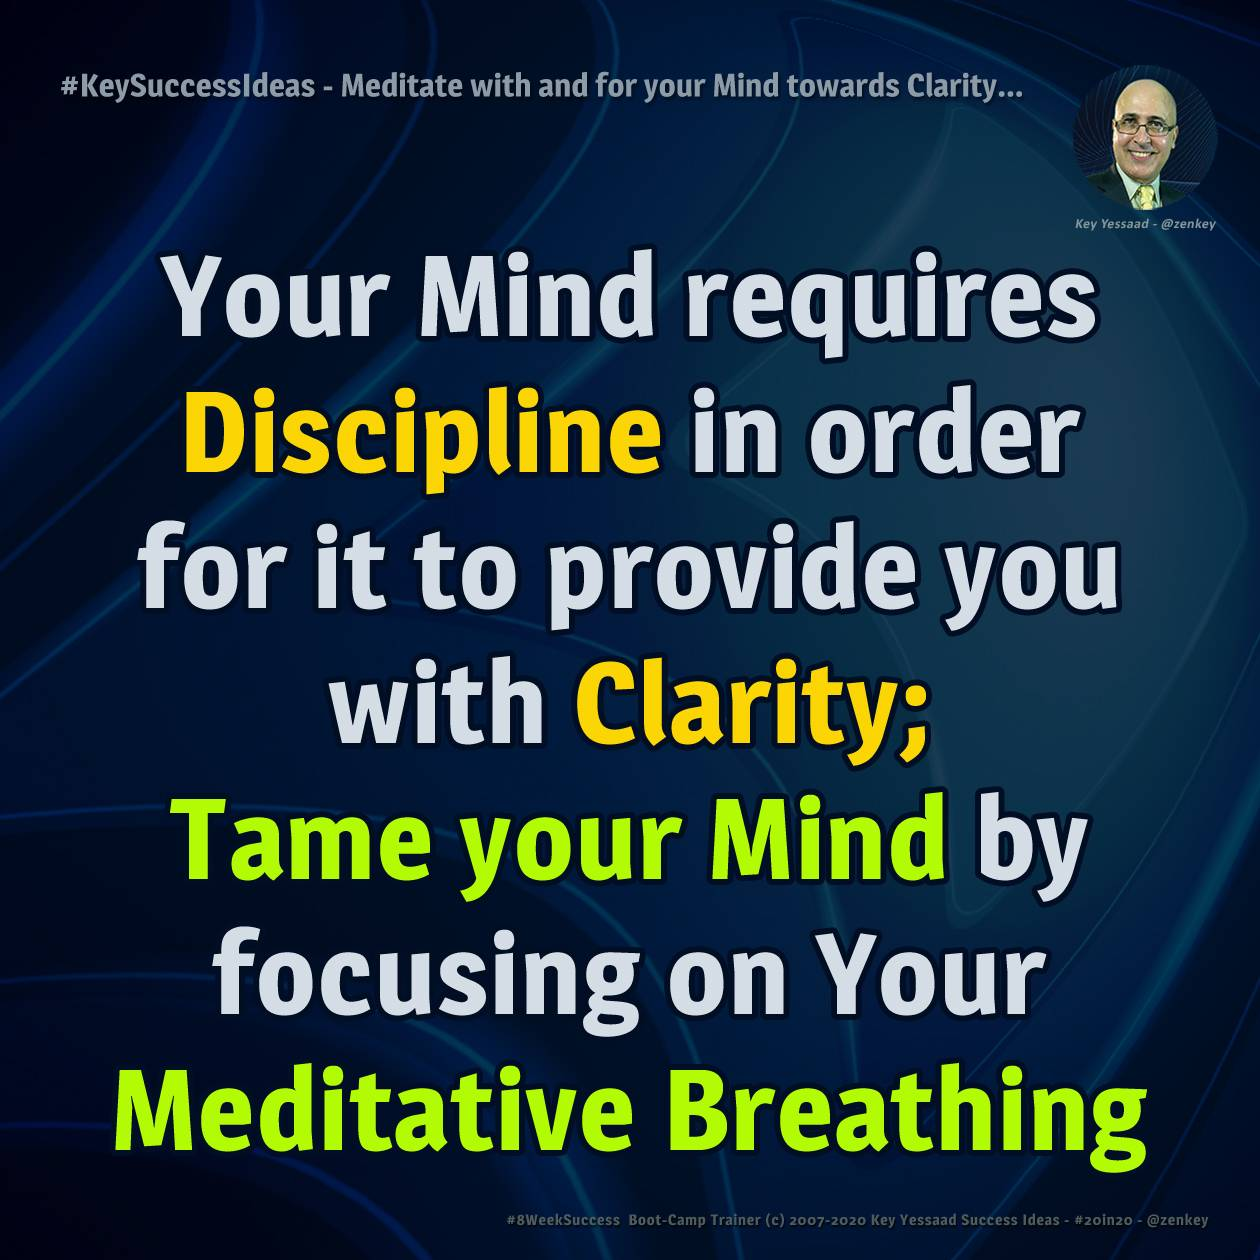 Meditate with and for your Mind towards Clarity... - #KeySuccessIdeas